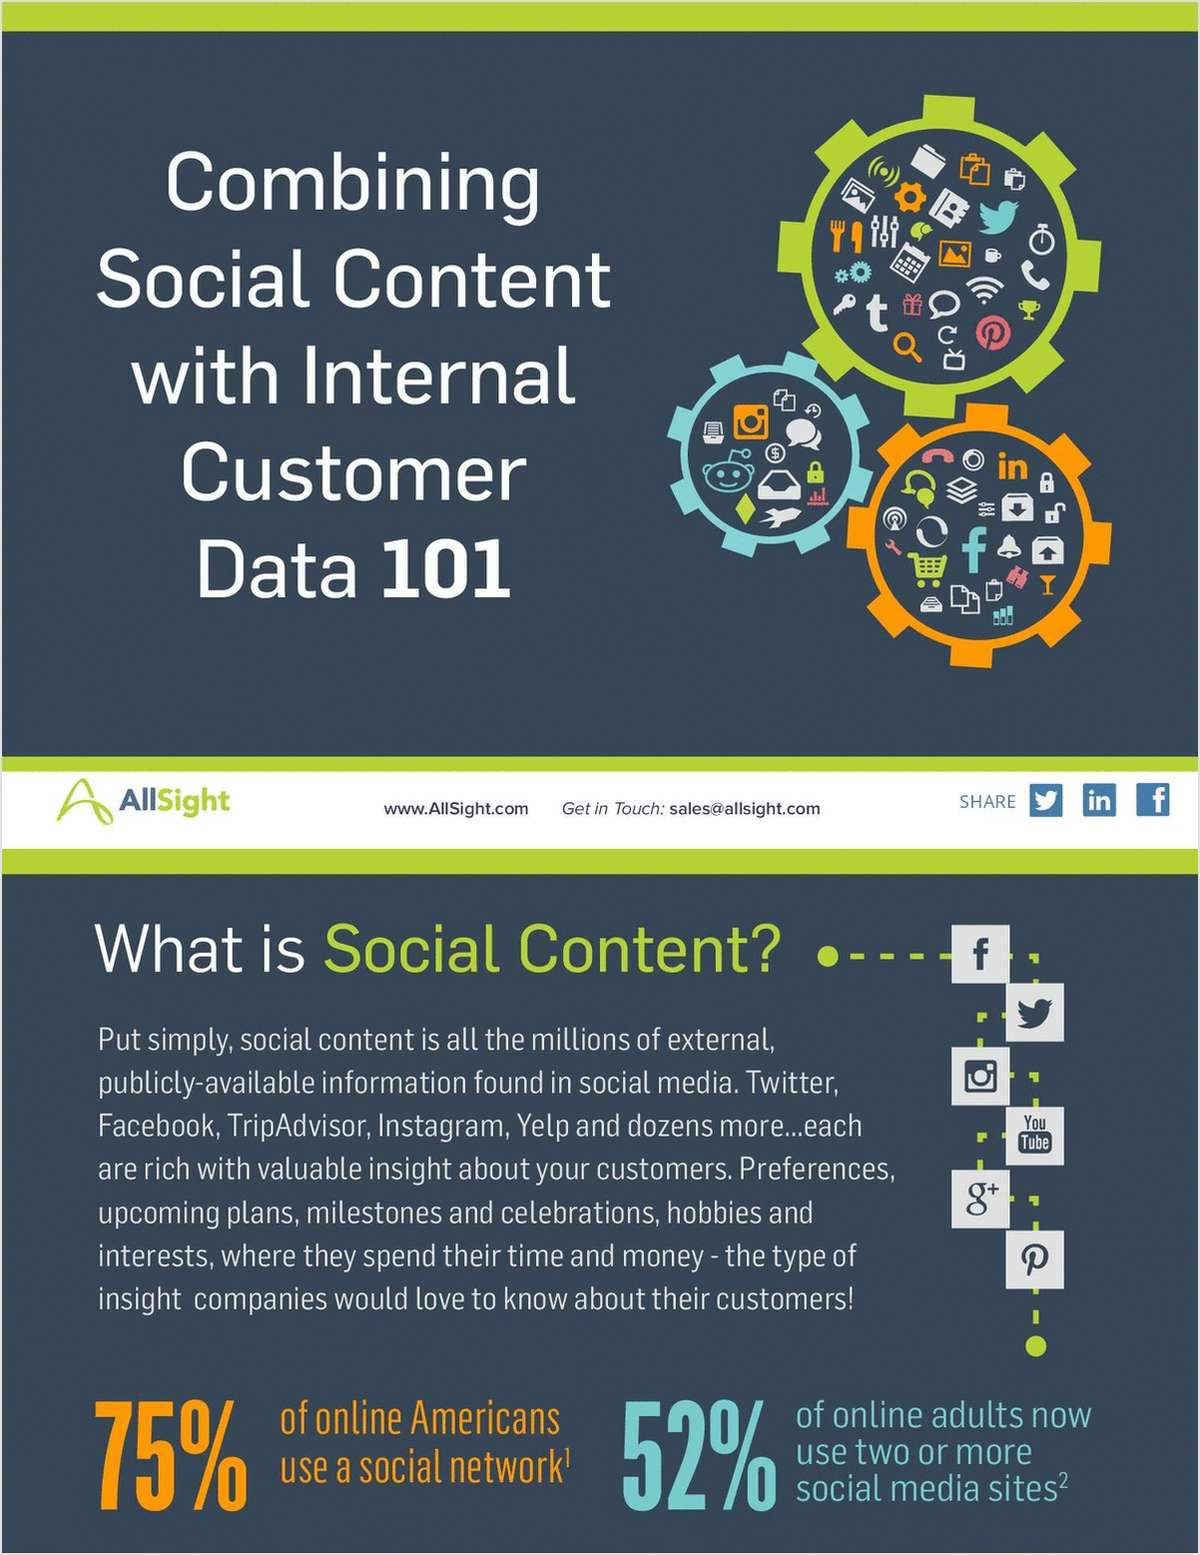 Combining Social Content with Internal Customer Data 101